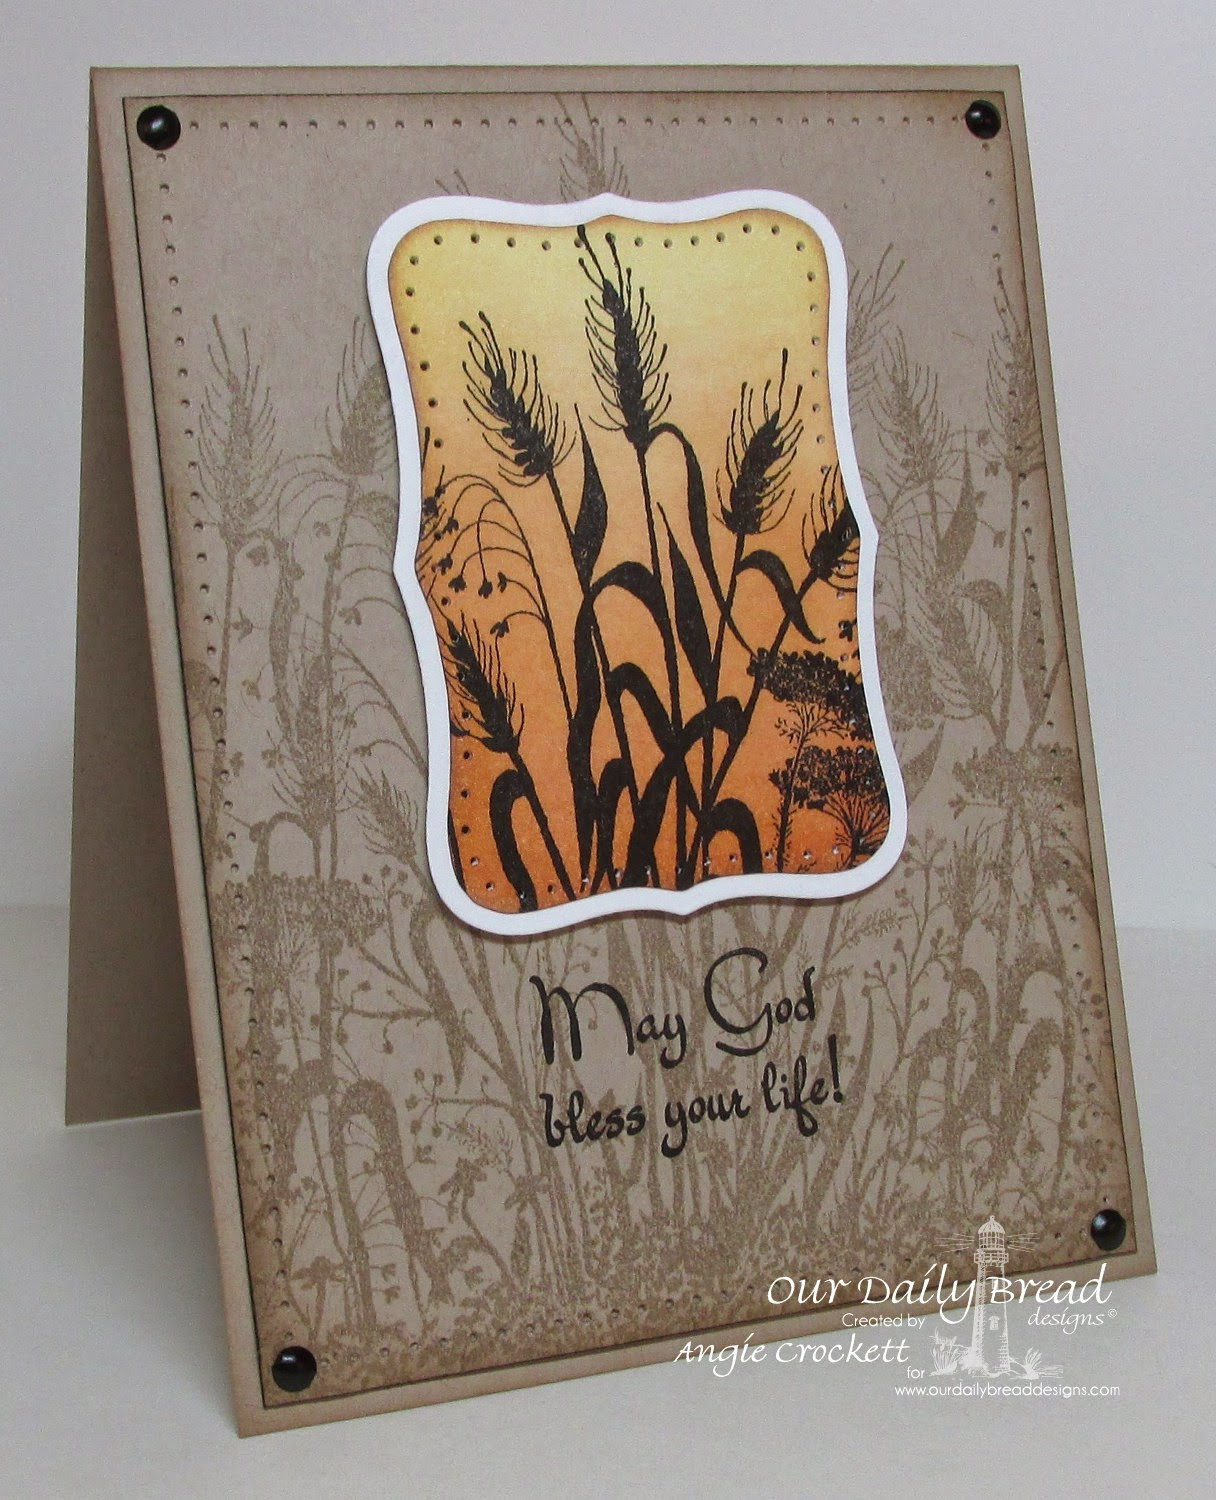 ODBD Wildflower Silhouette Background, ODBD Life is a Gift, Card Designer Angie Crockett